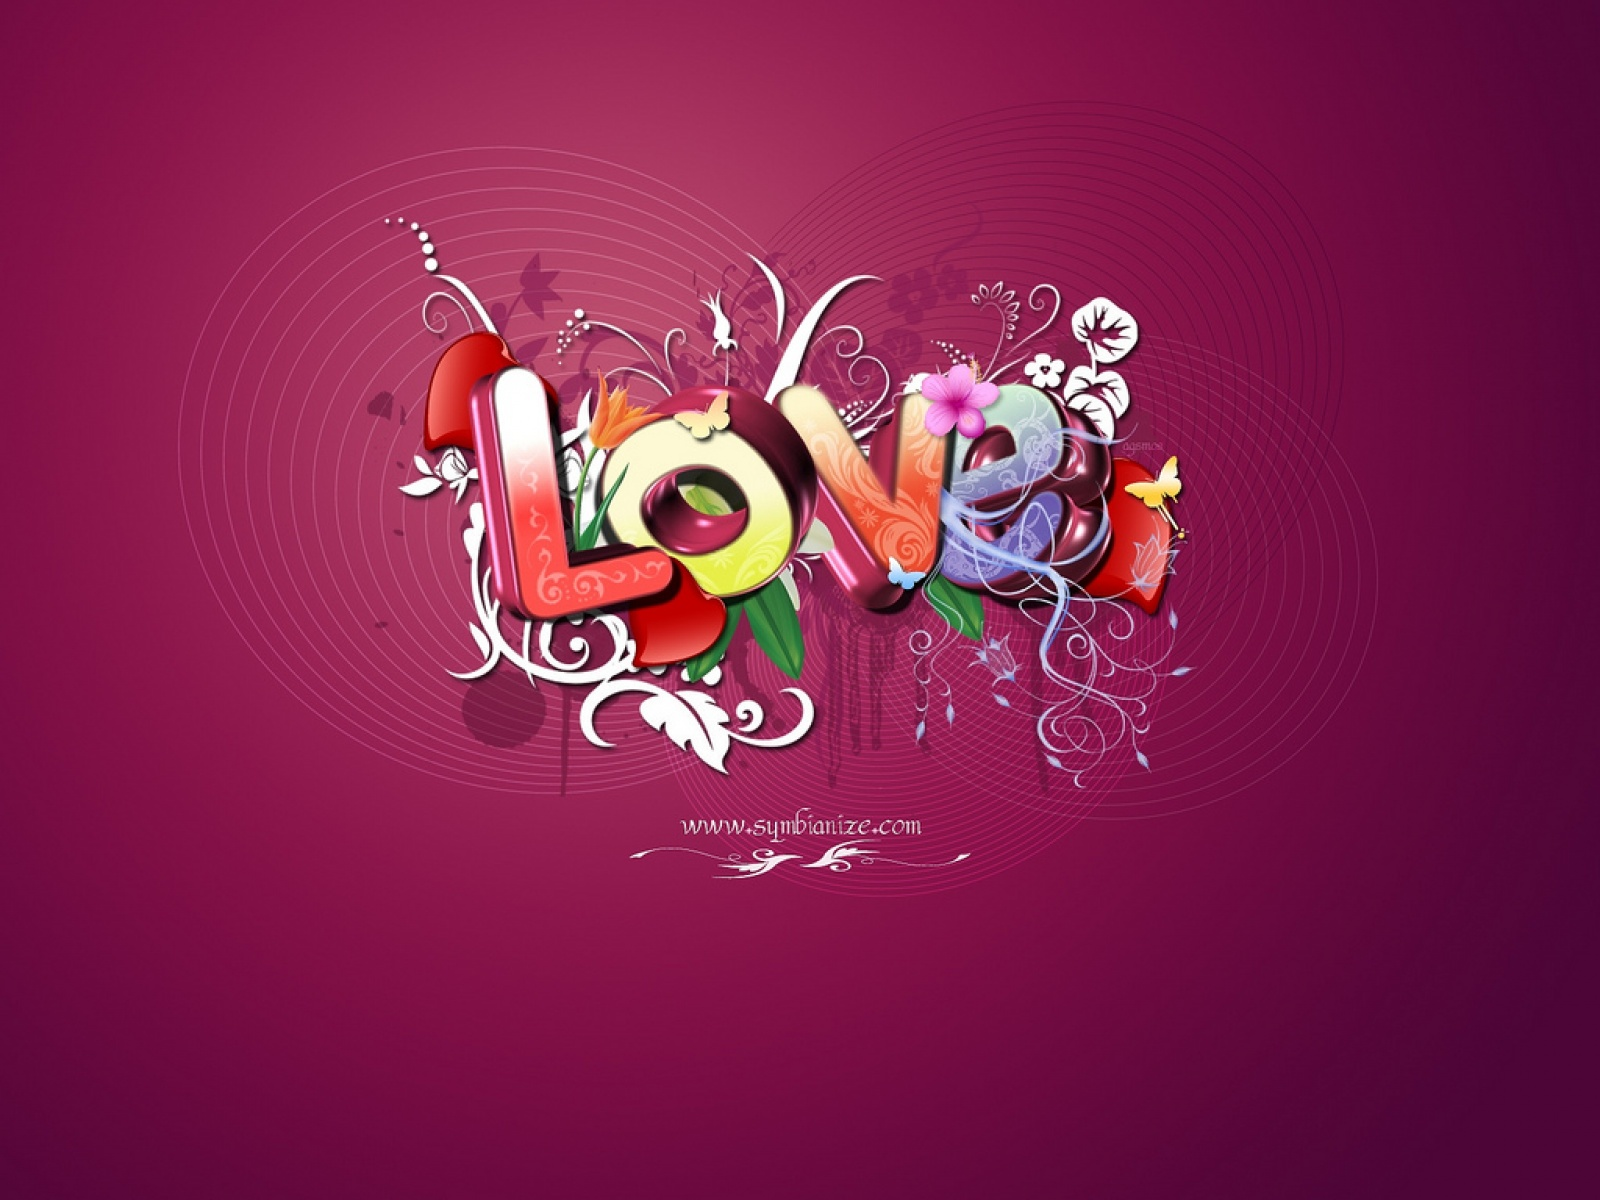 desktop backgrounds wallpapers valentines day hd desktop backgrounds 1600x1200